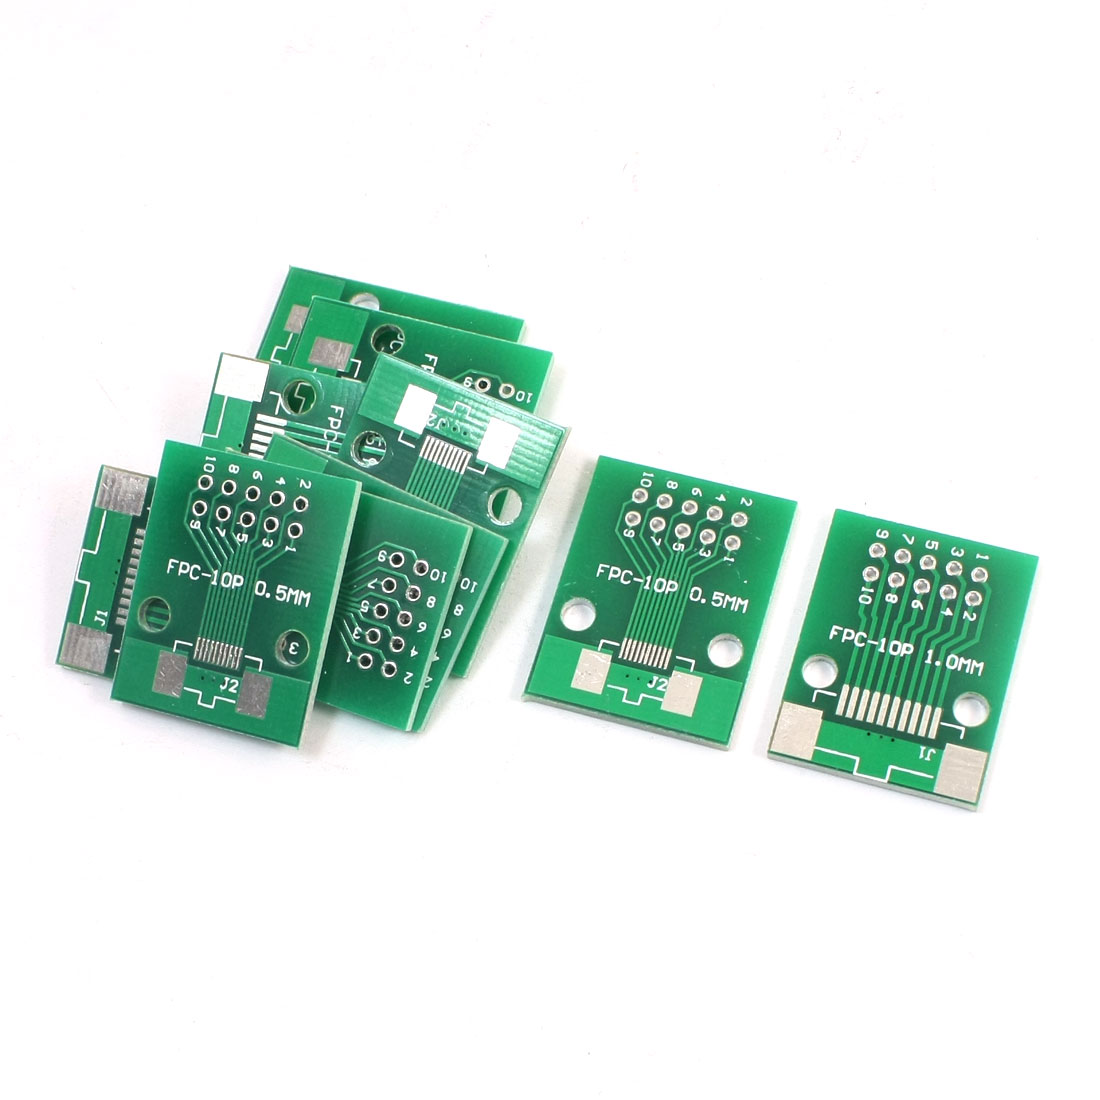 10Pcs SMD SMT FPC-10P 0.5mm 1mm to DIP10 2.54mm Pitch 2 Sides PCB Adapter Plate Converter Board